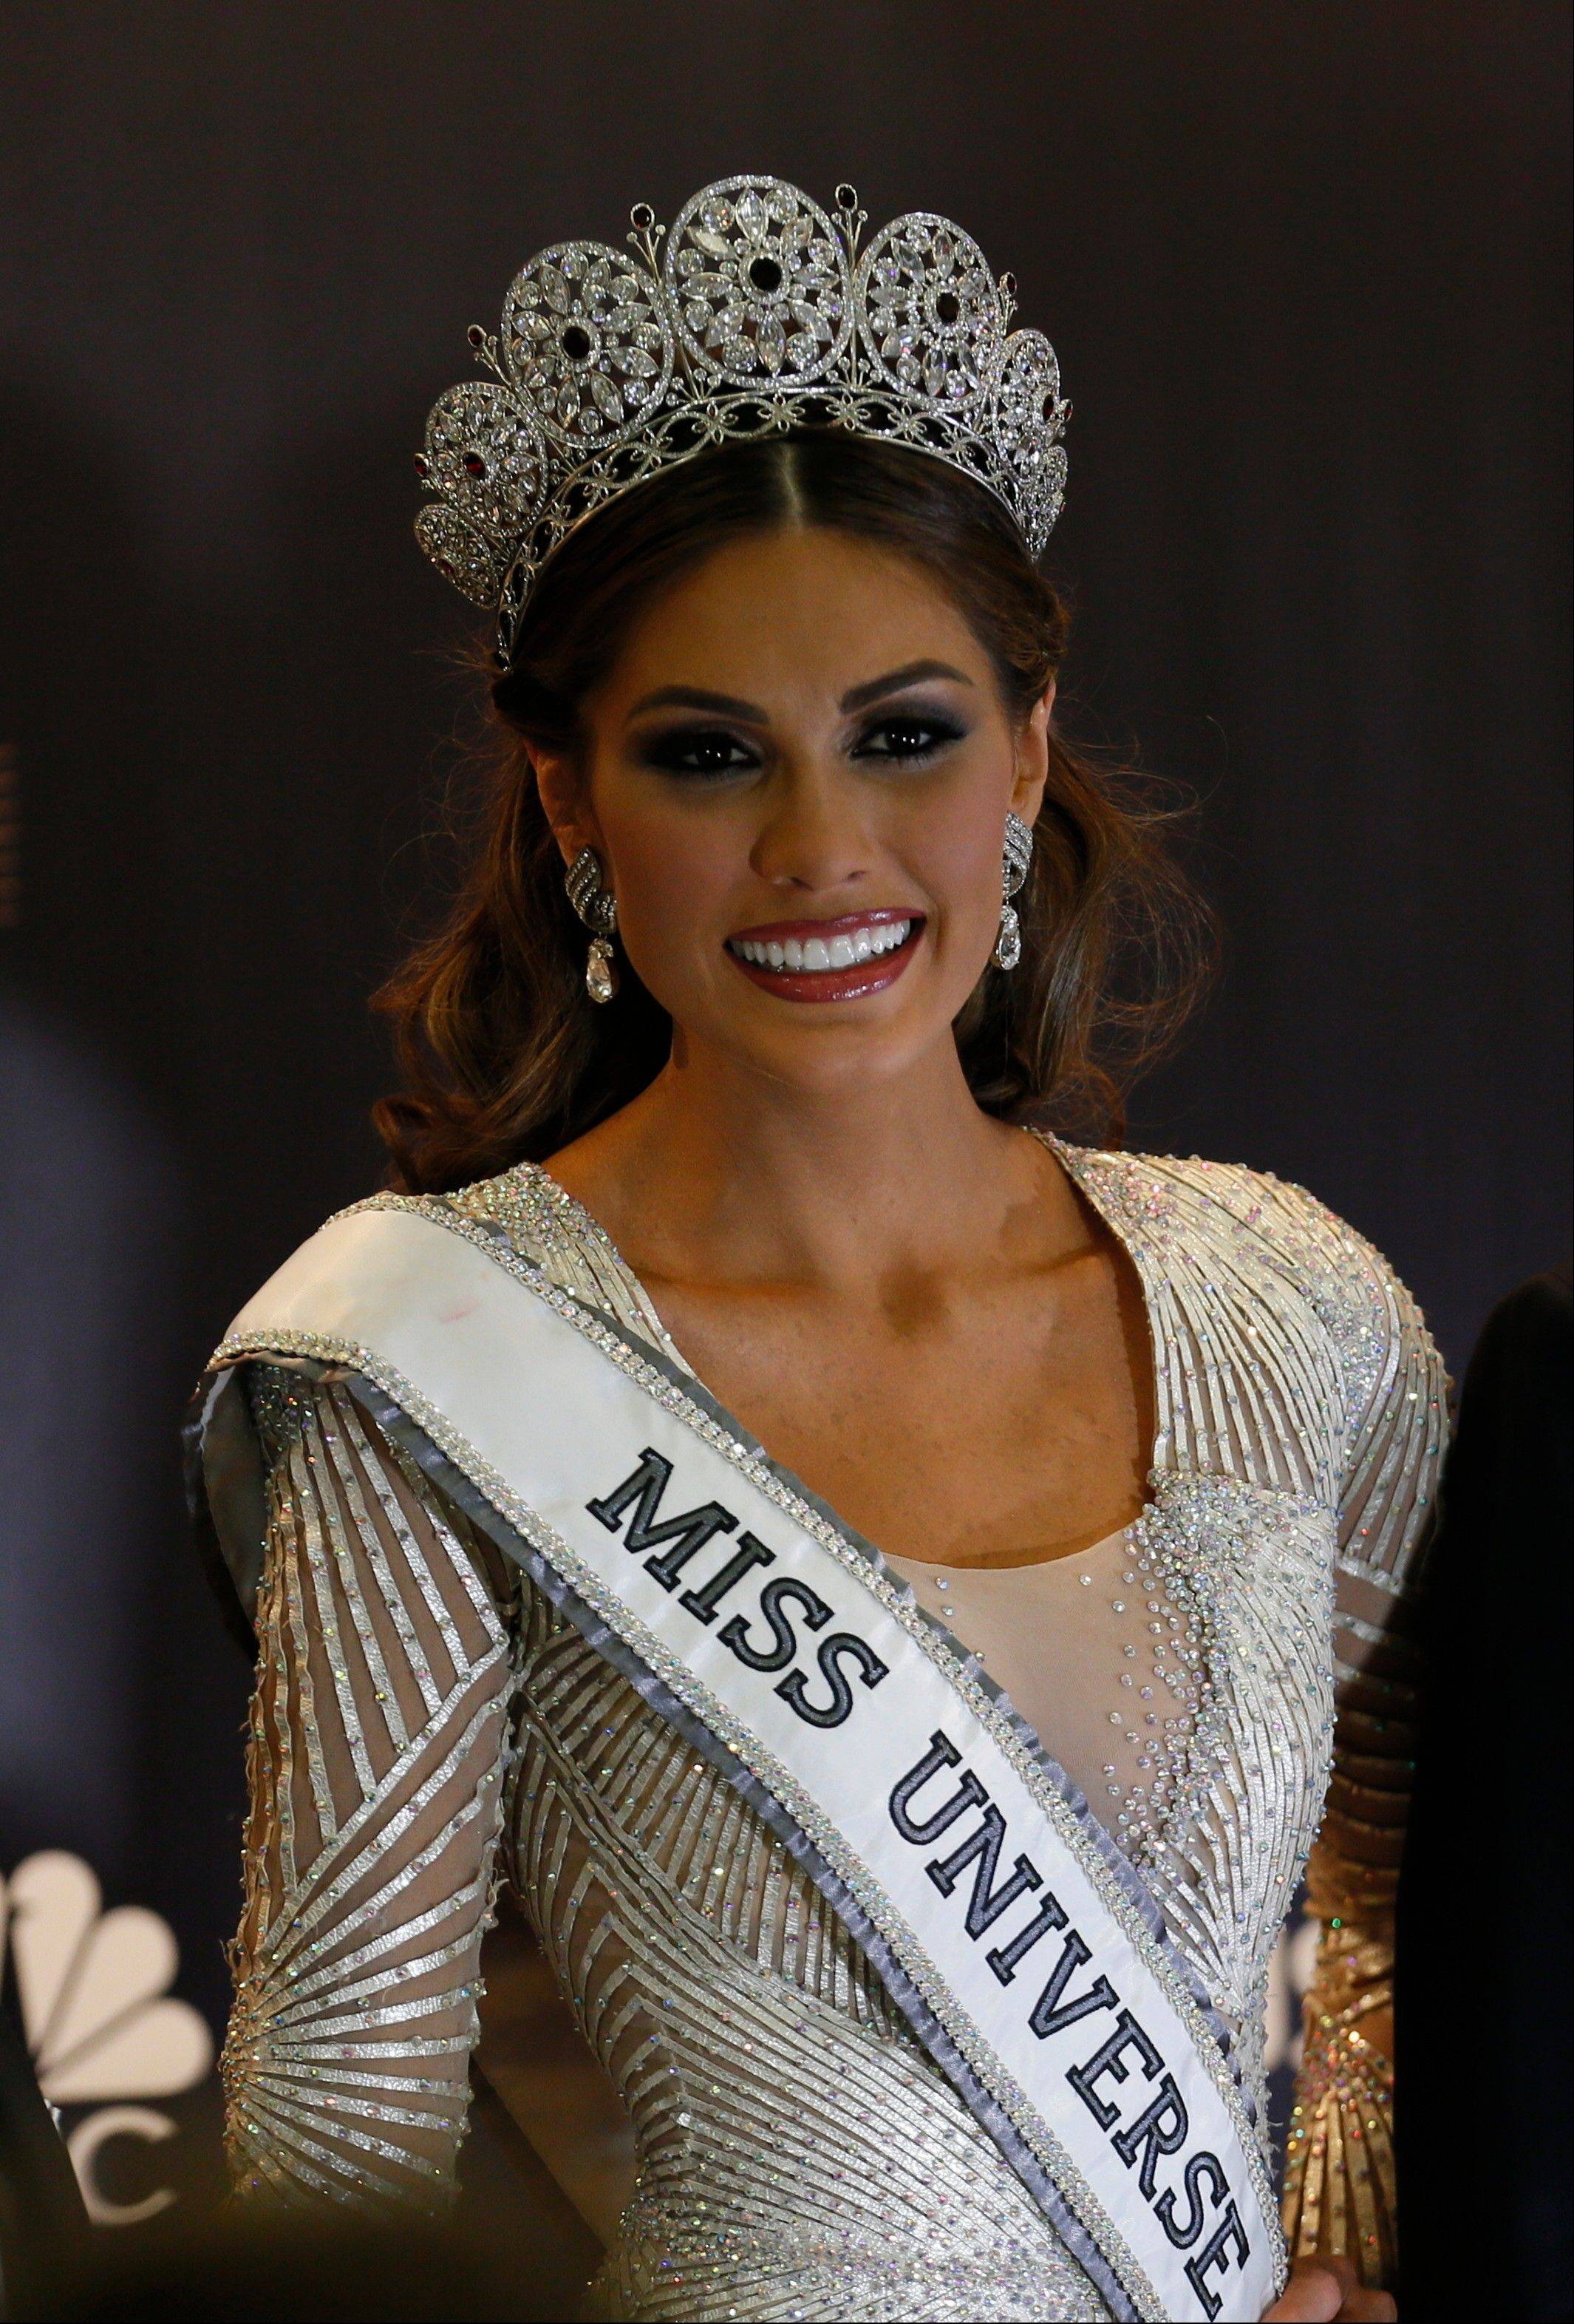 Miss Universe 2013 Gabriela Isler from Venezuela smiles during the media conference Sunday after winning the 2013 Miss Universe pageant in Moscow, Russia.